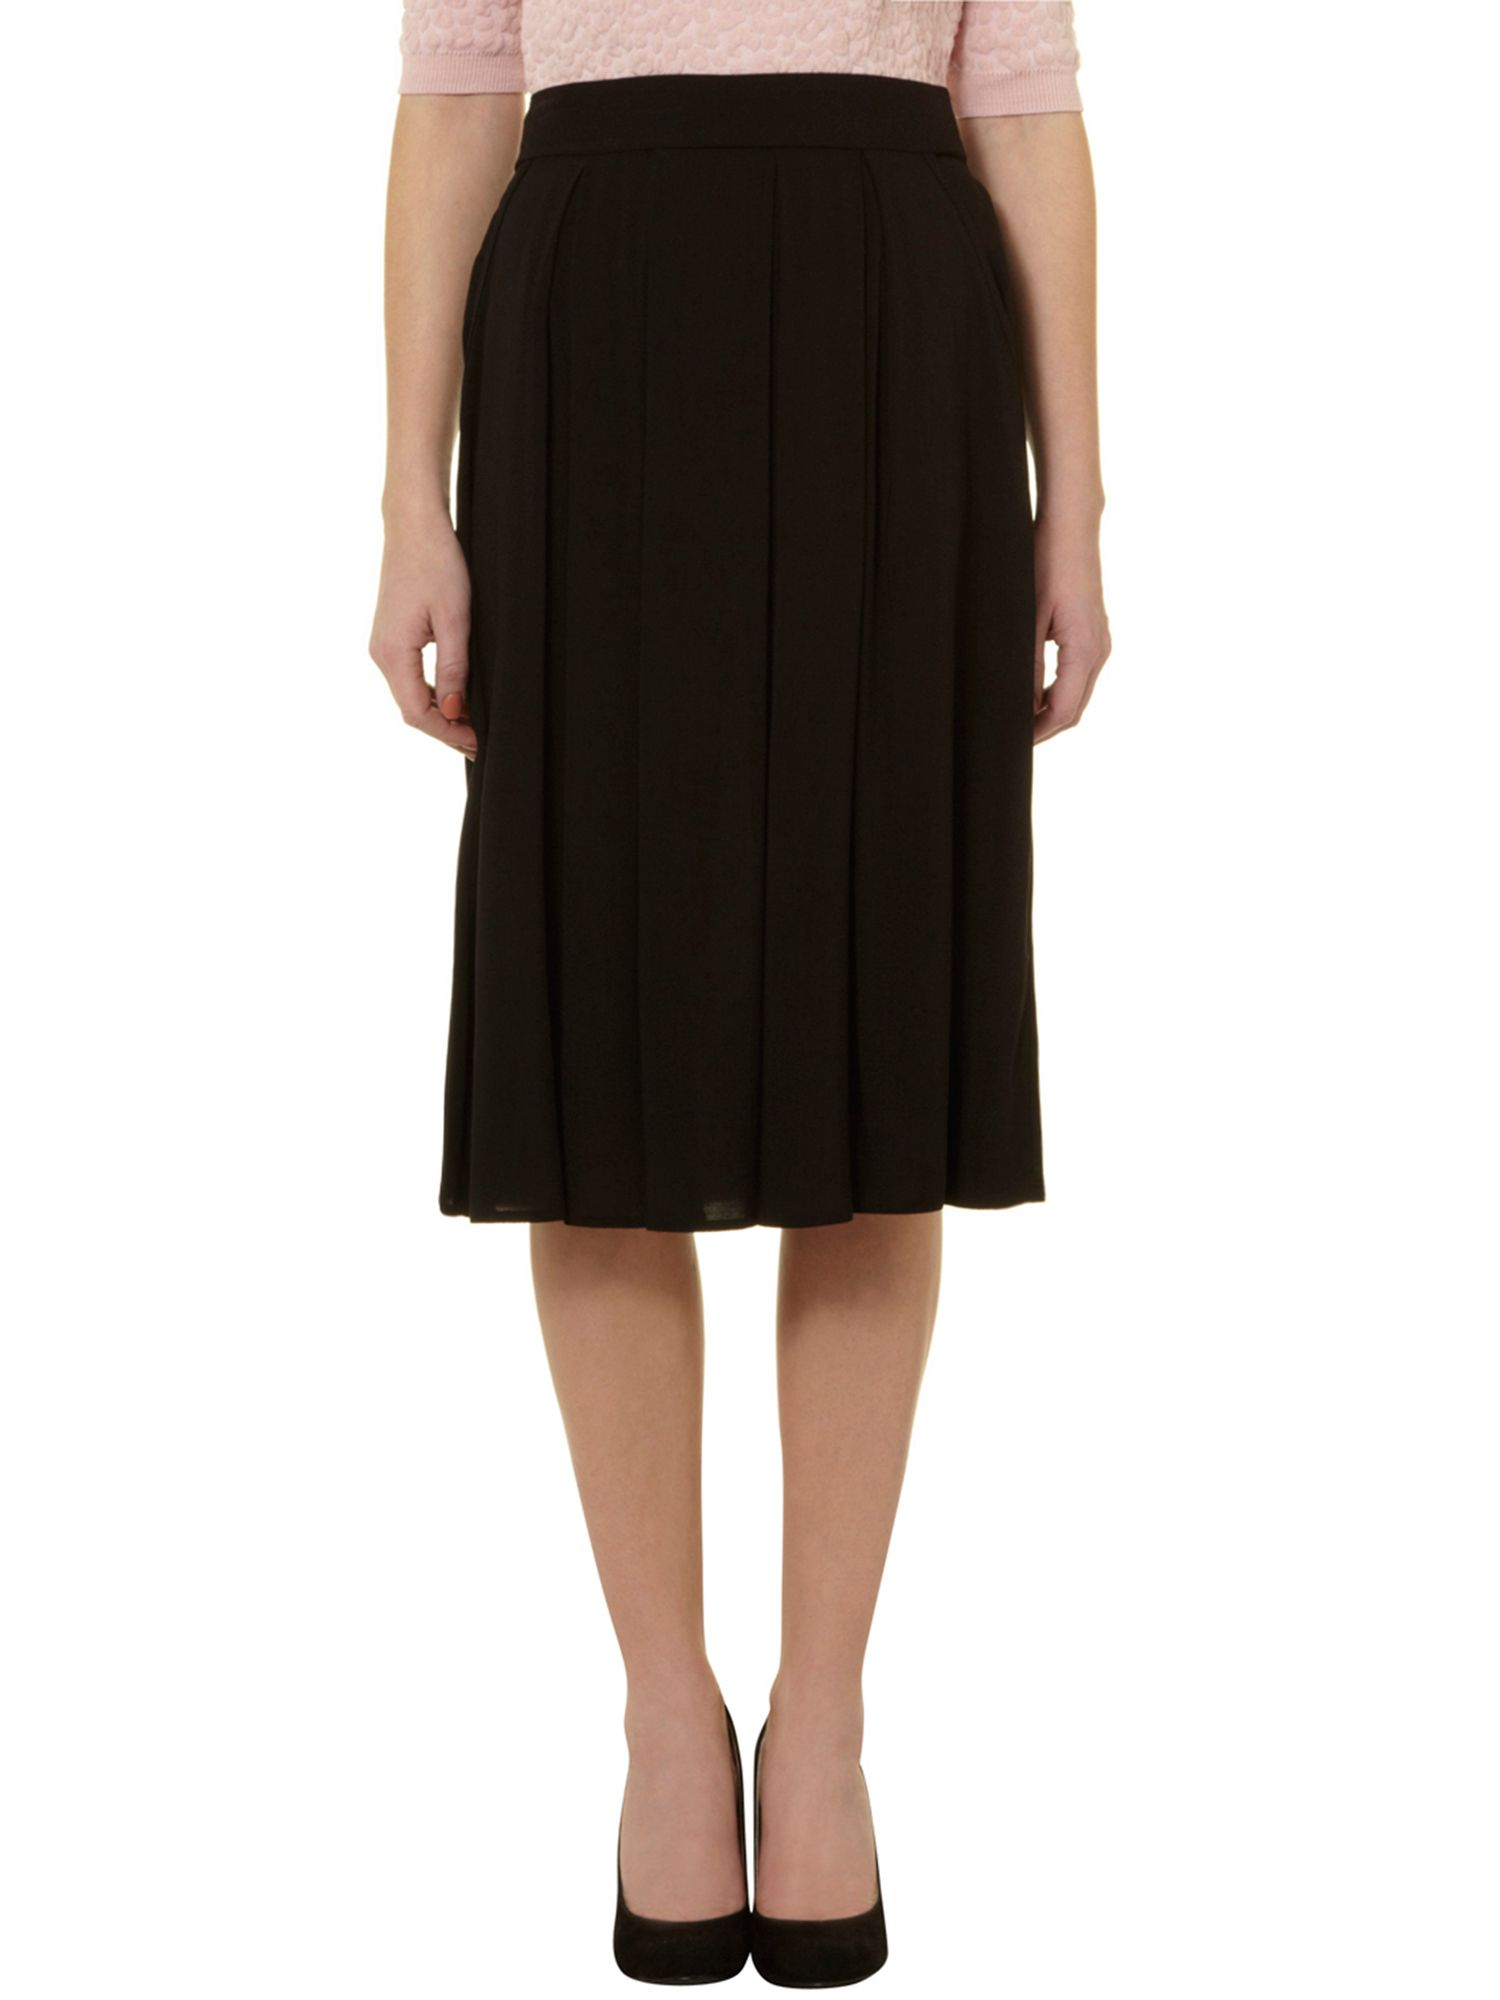 Simple plain midi skirt